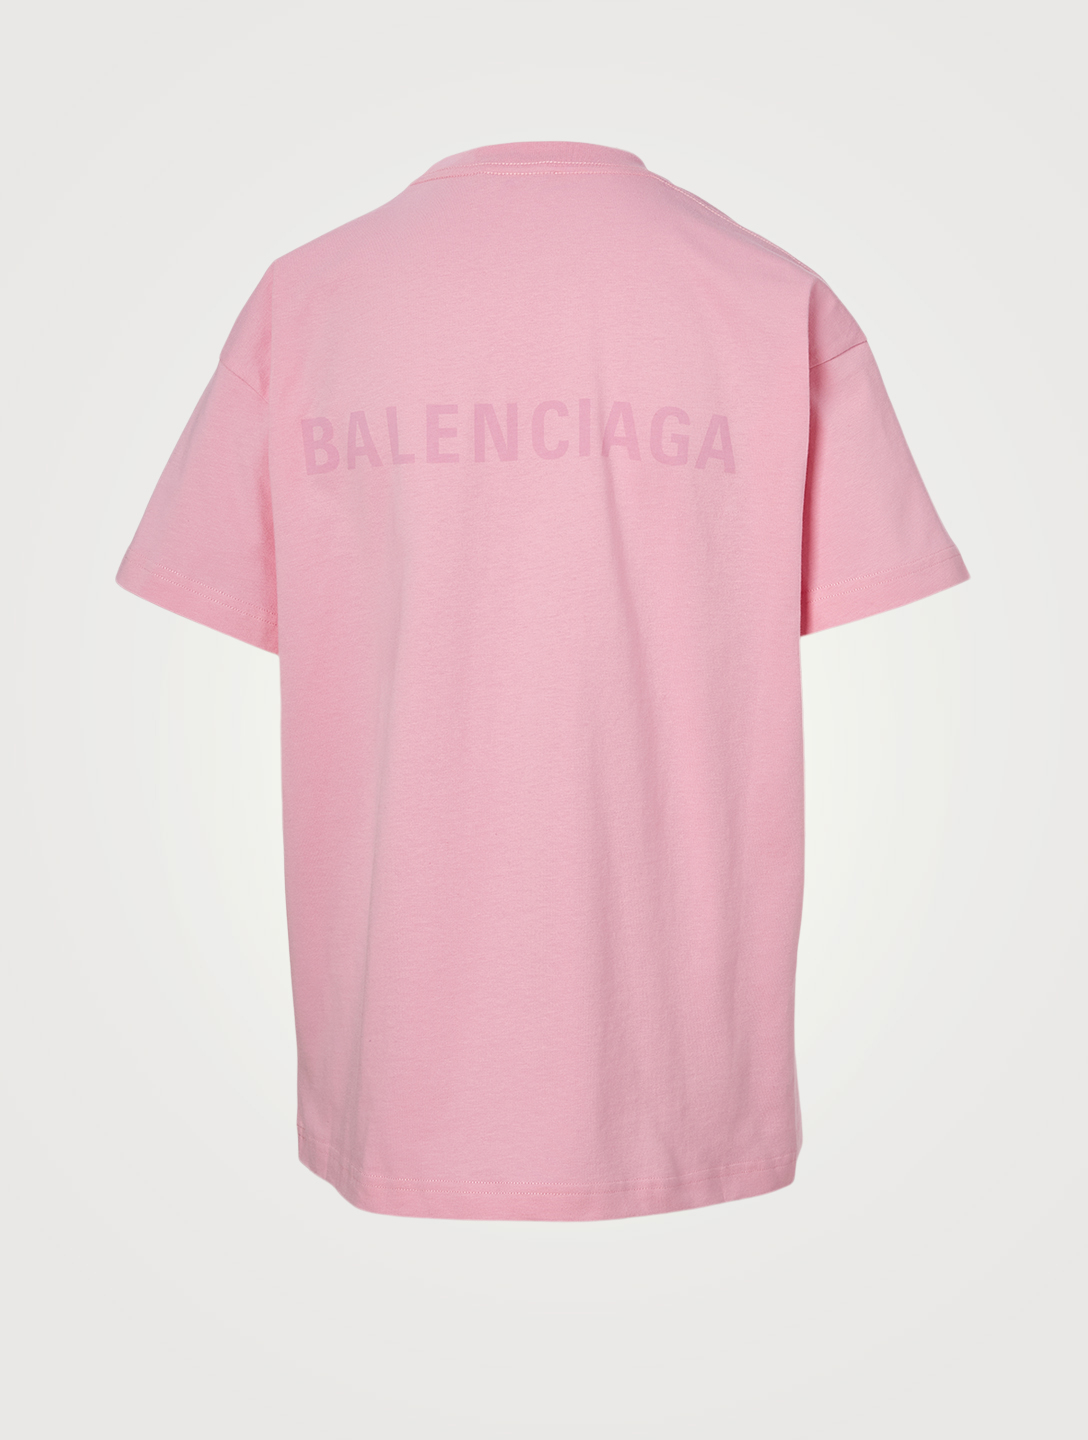 BALENCIAGA Cotton Logo T-Shirt Women's Pink